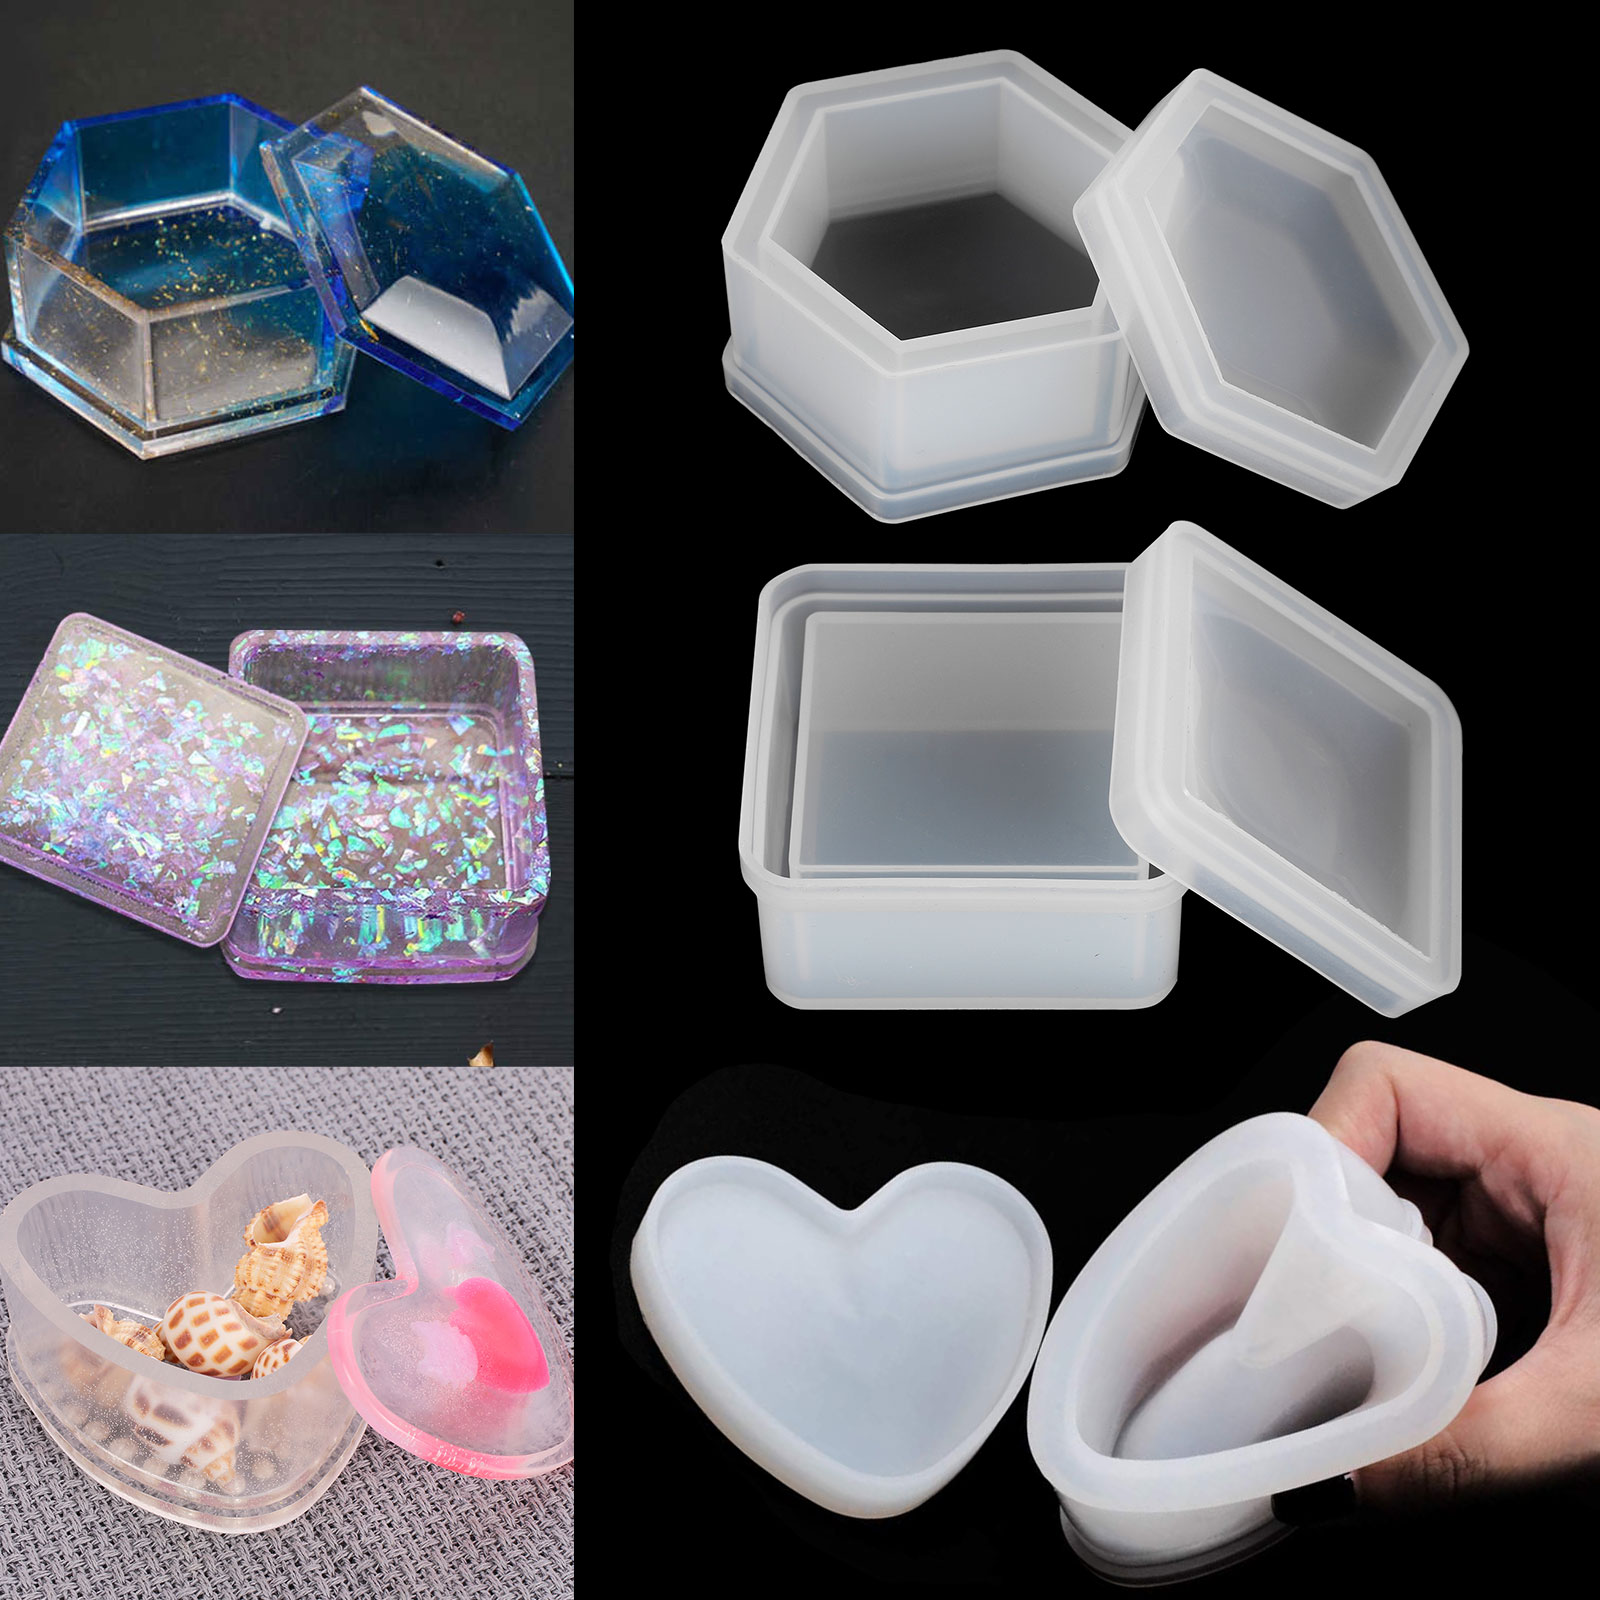 Silicone Hexagon Jewellery Storage Box Mold Resin Casting Mould DIY Making Craft